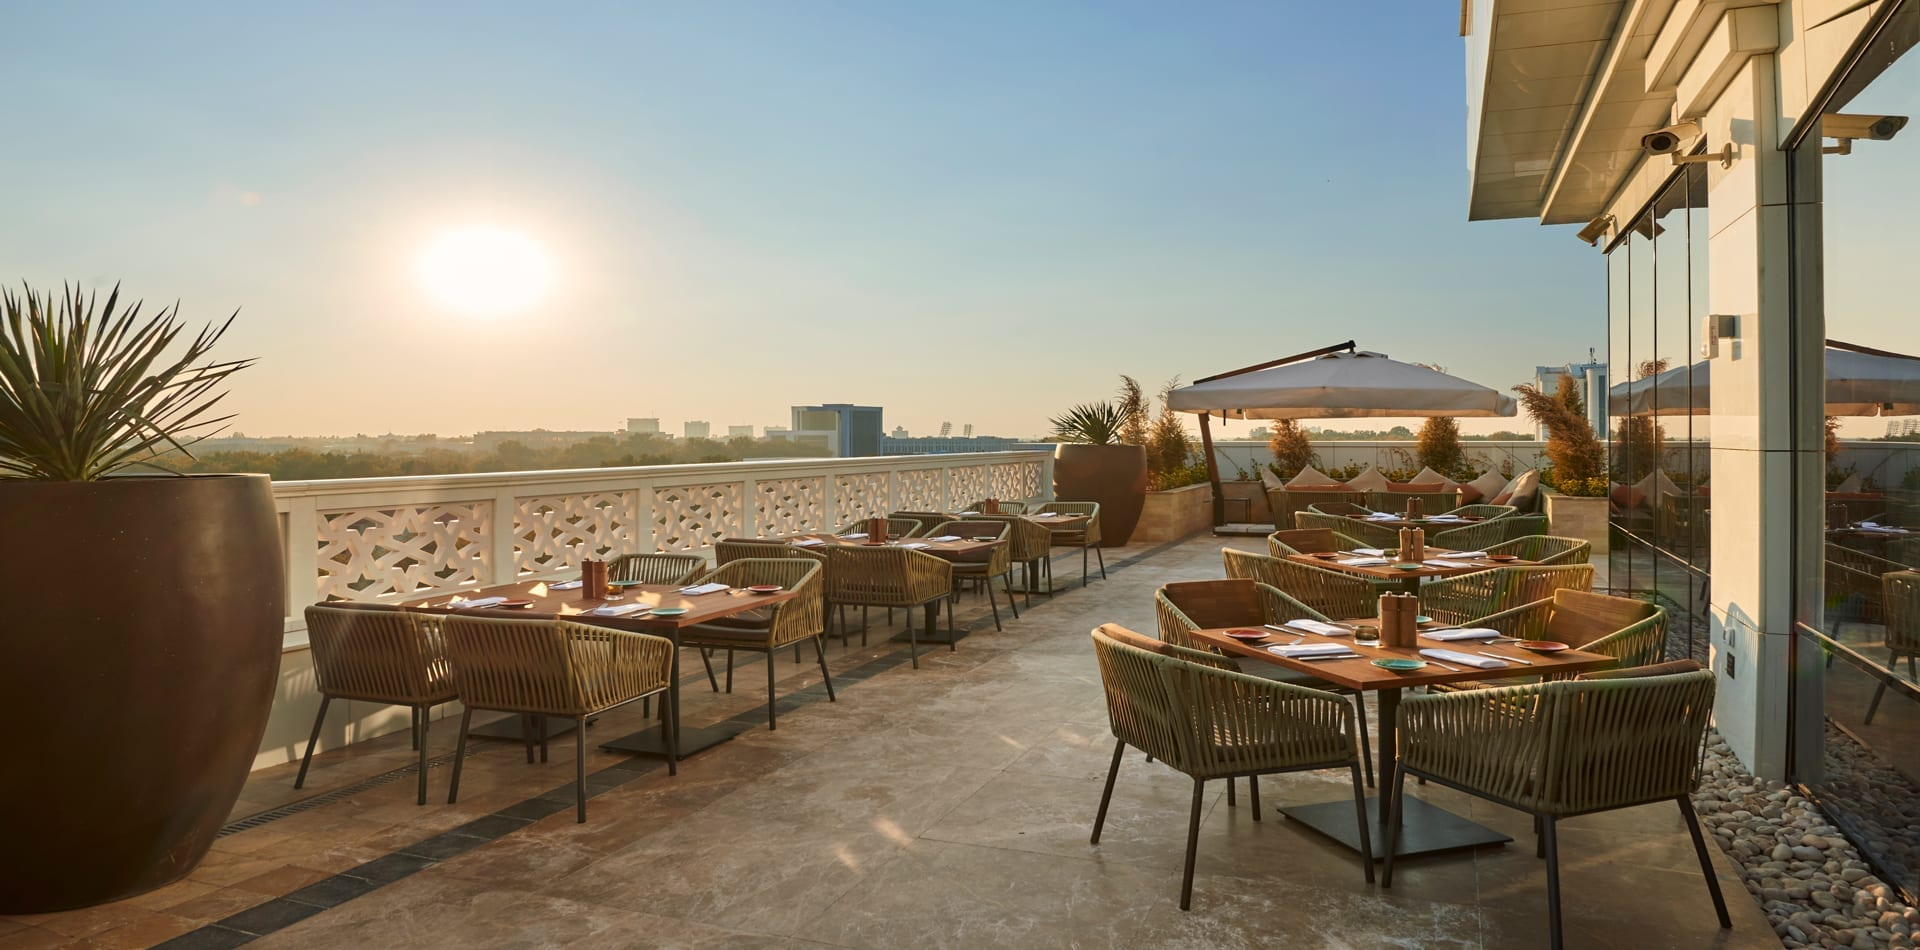 uzbekistan hyatt regency outdoor dining area exterior